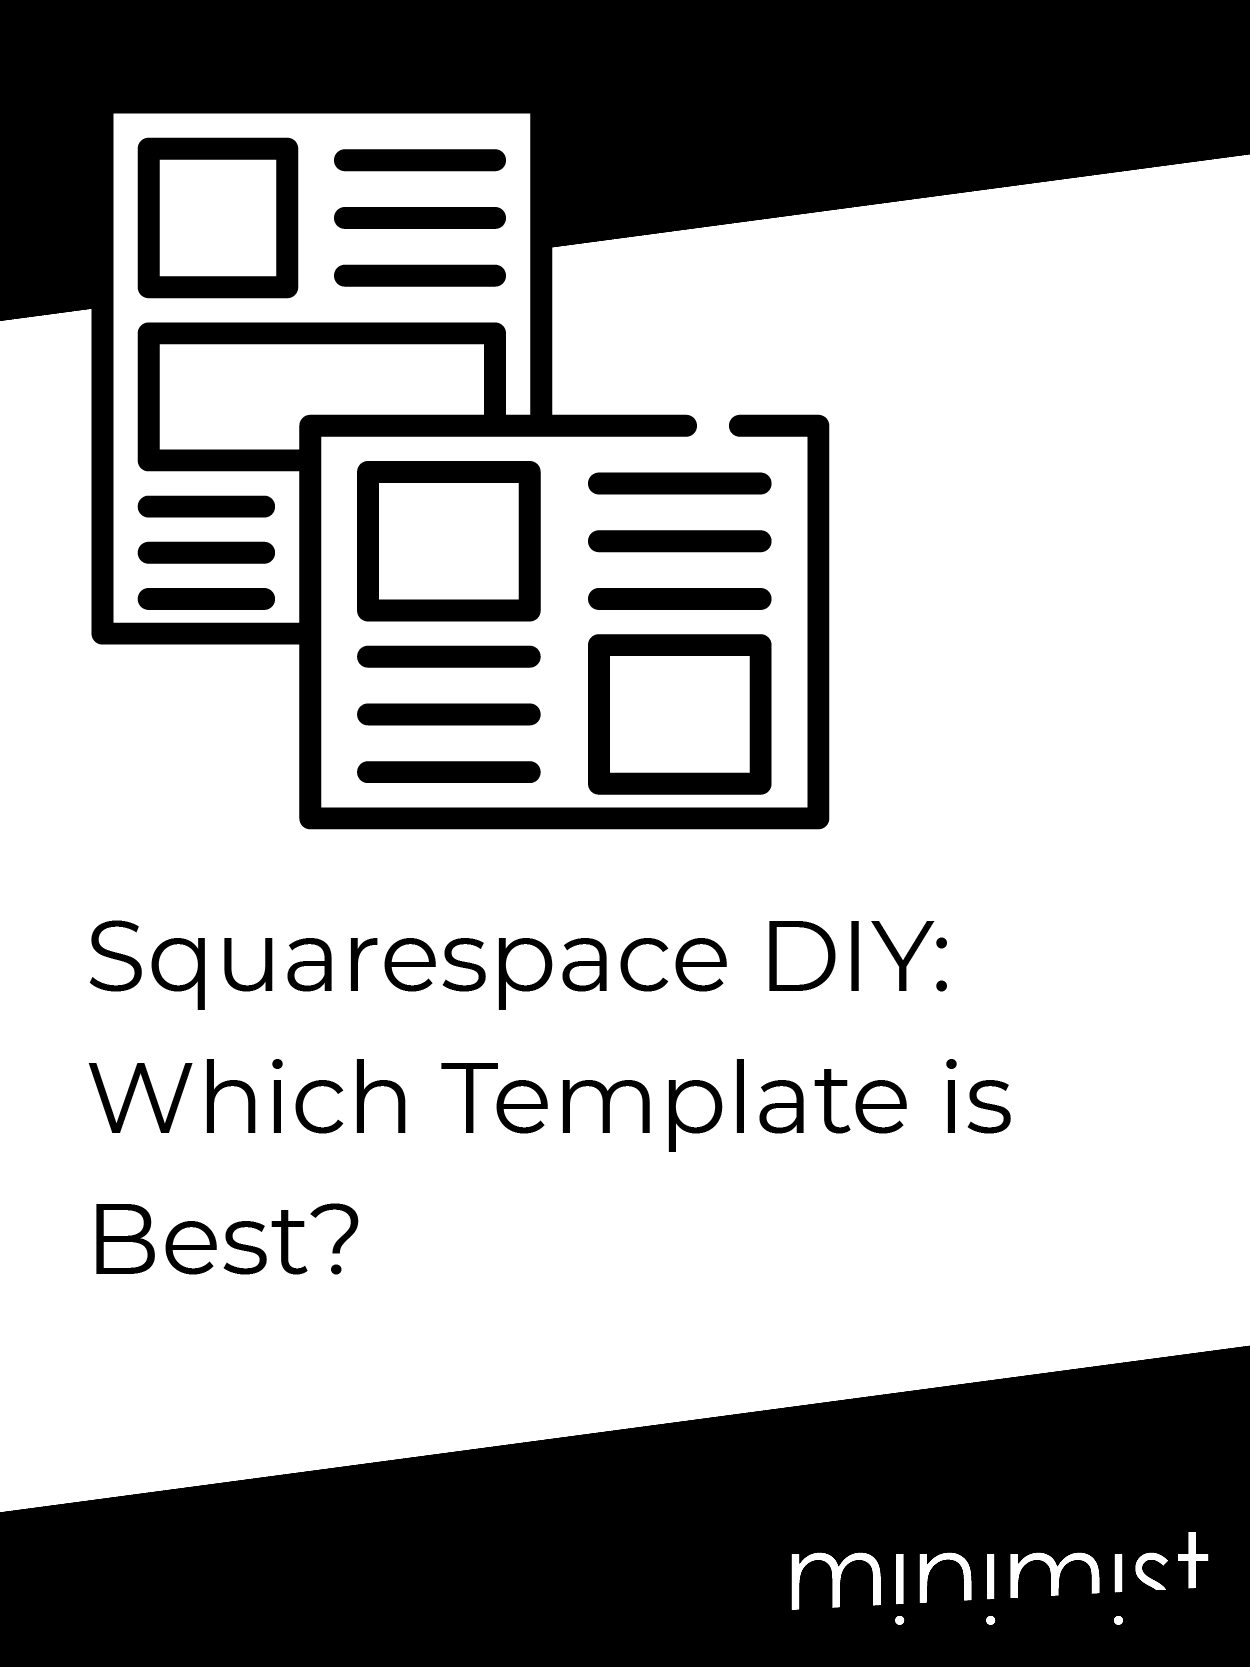 Squarespace DIY: Which Template is Best?